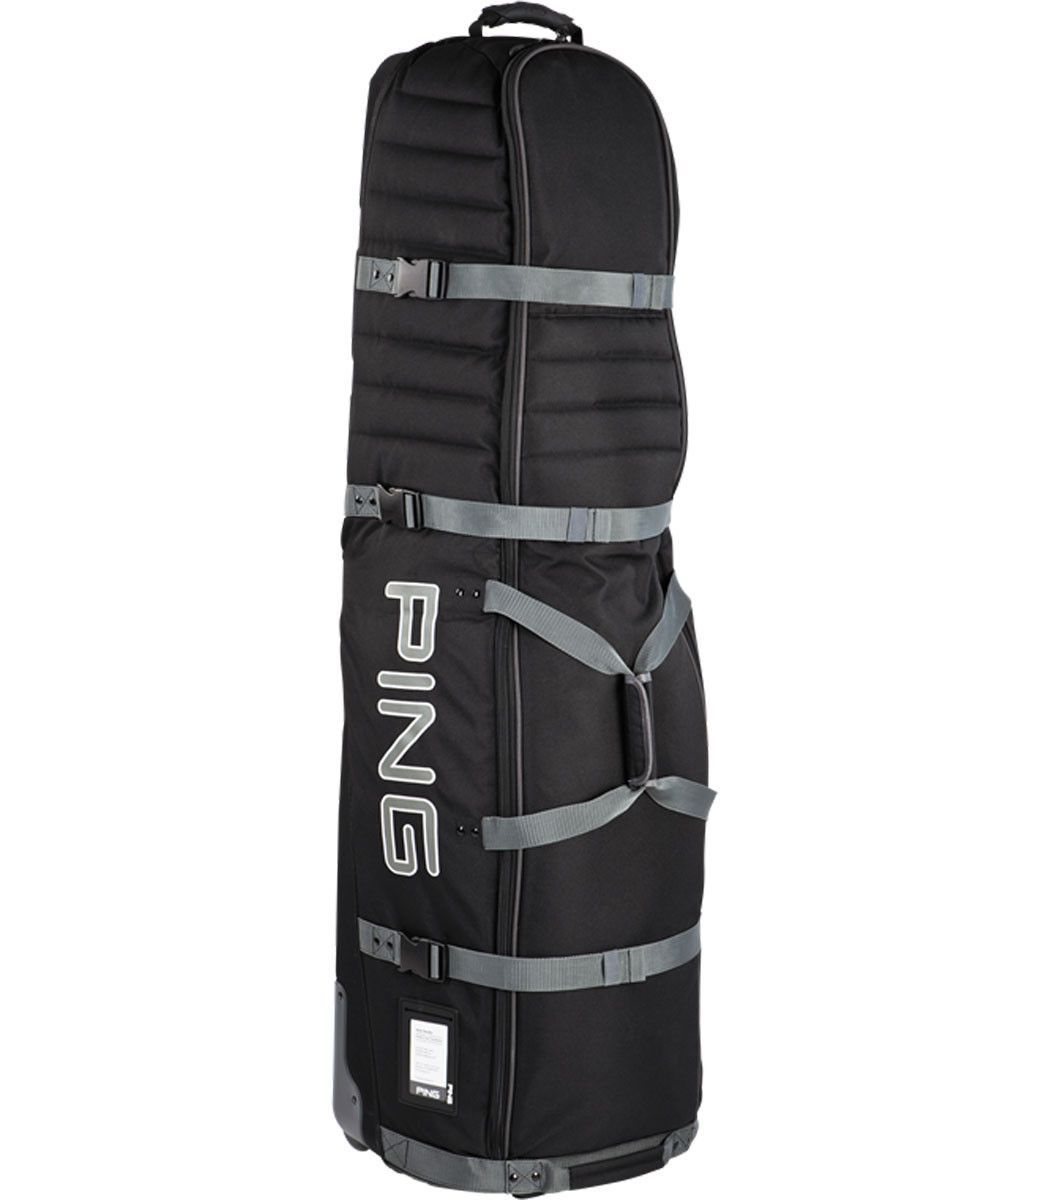 Ping Golf Travel Bag With Wheels  8c676afde85d6